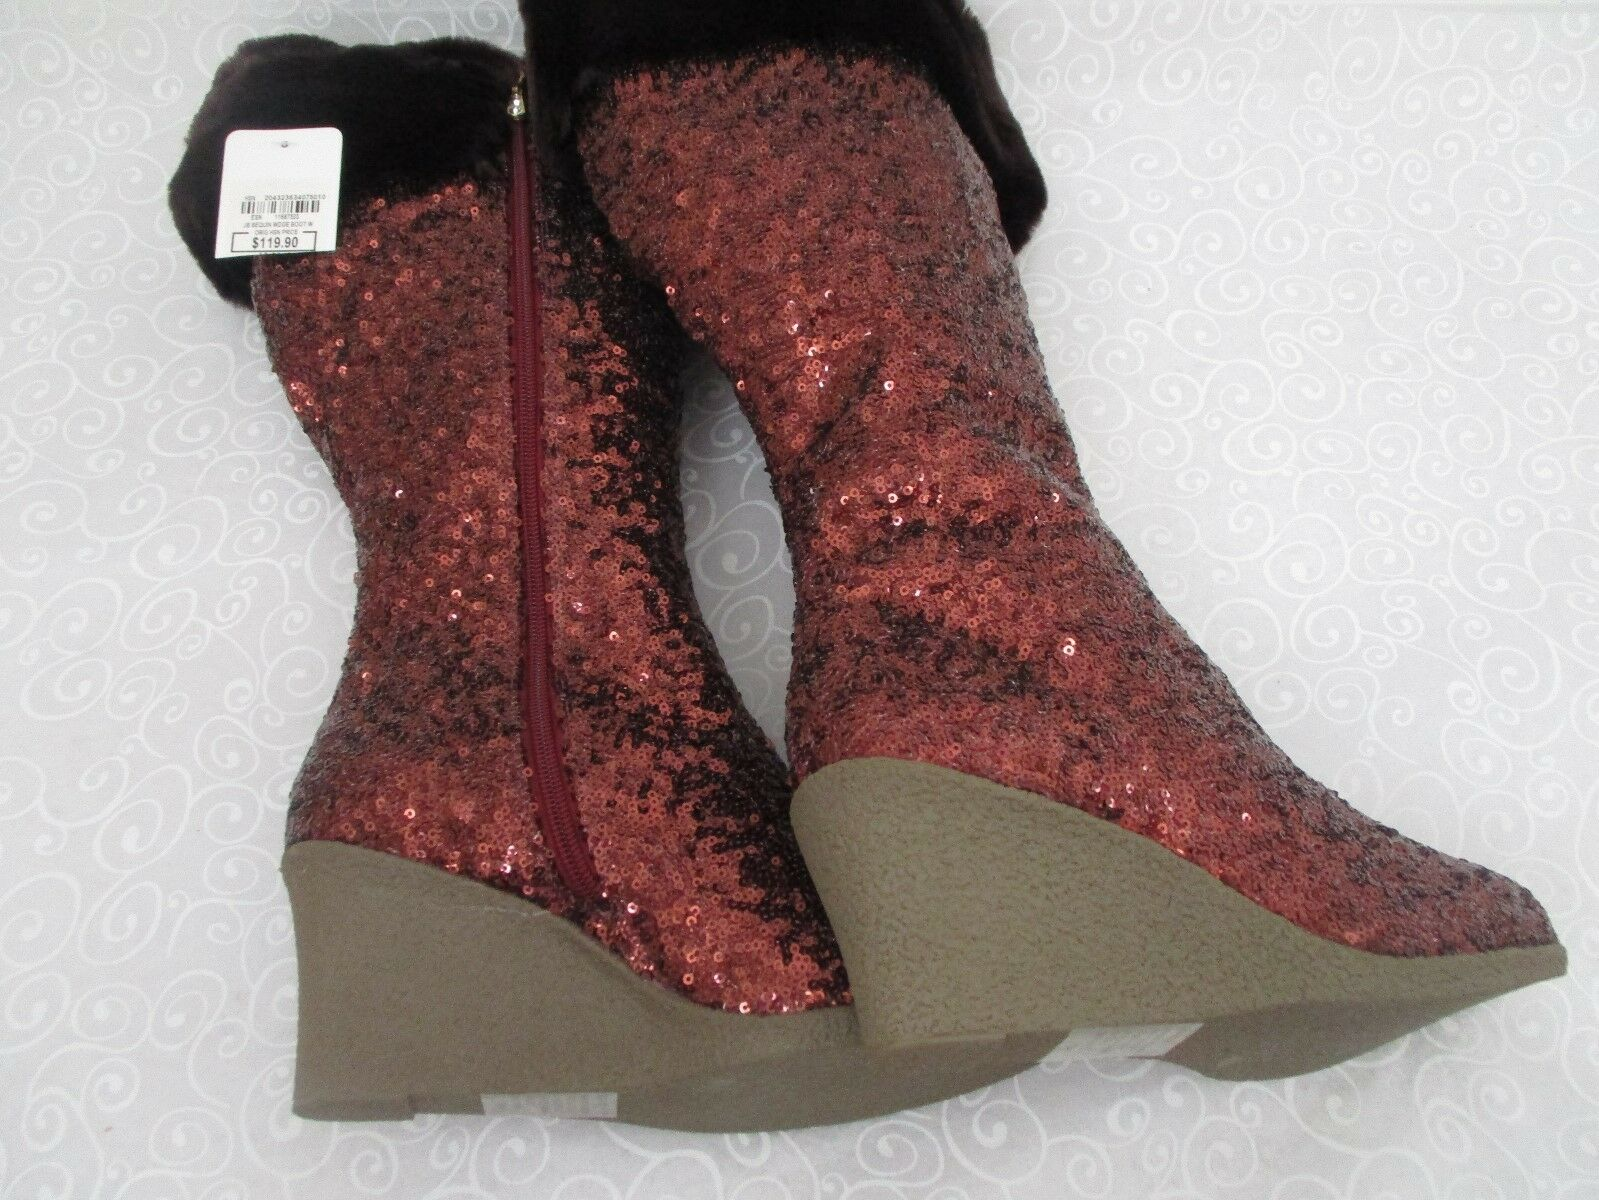 JOAN BOYCE COOPER/BRONZE WEDGE FULLY SEQUIN FAUX FUR WEDGE COOPER/BRONZE Stiefel SIZE 7 1/2 M - NEW d43505